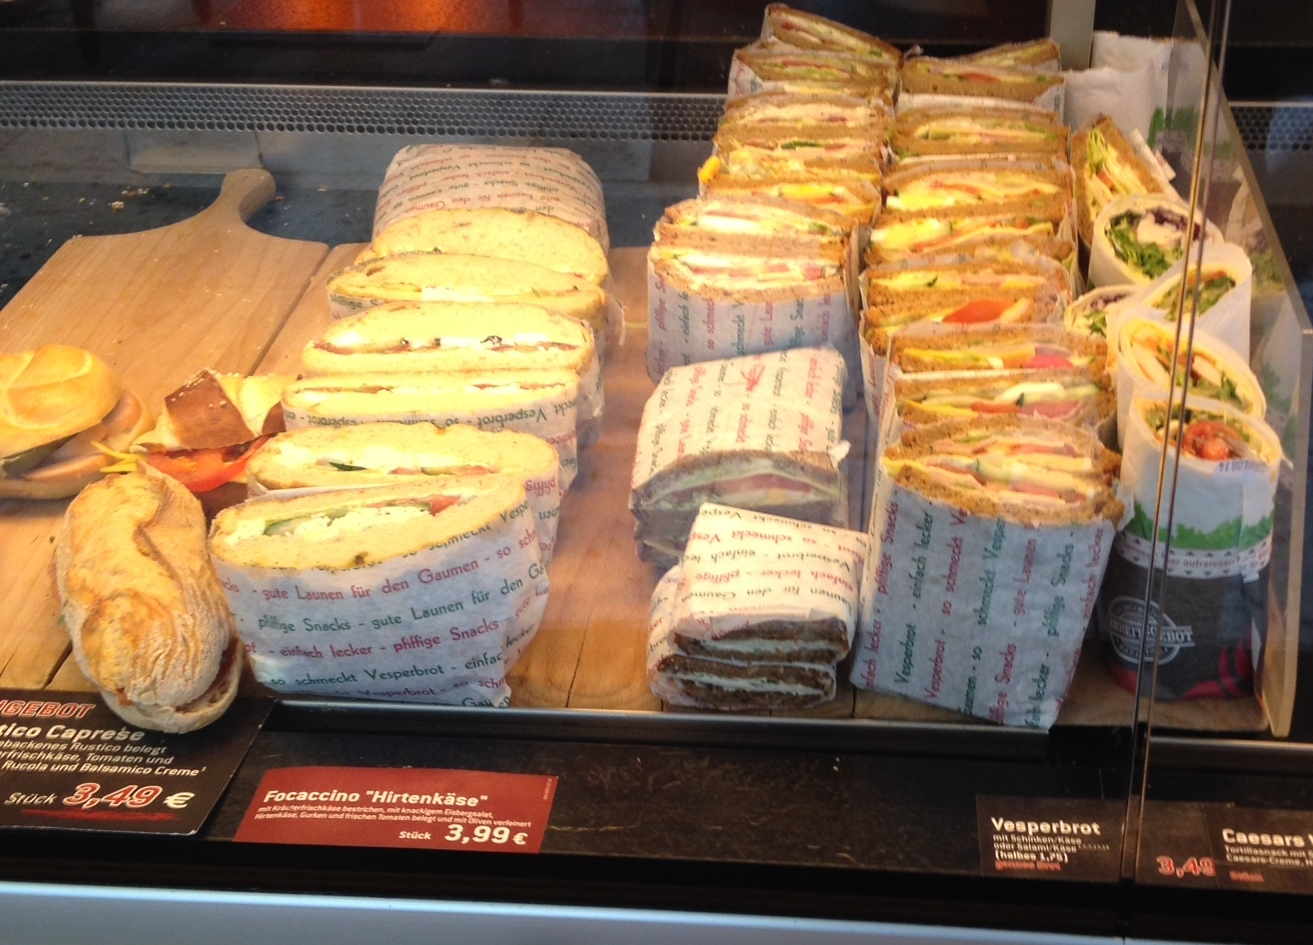 Sandwiches in a bakery window